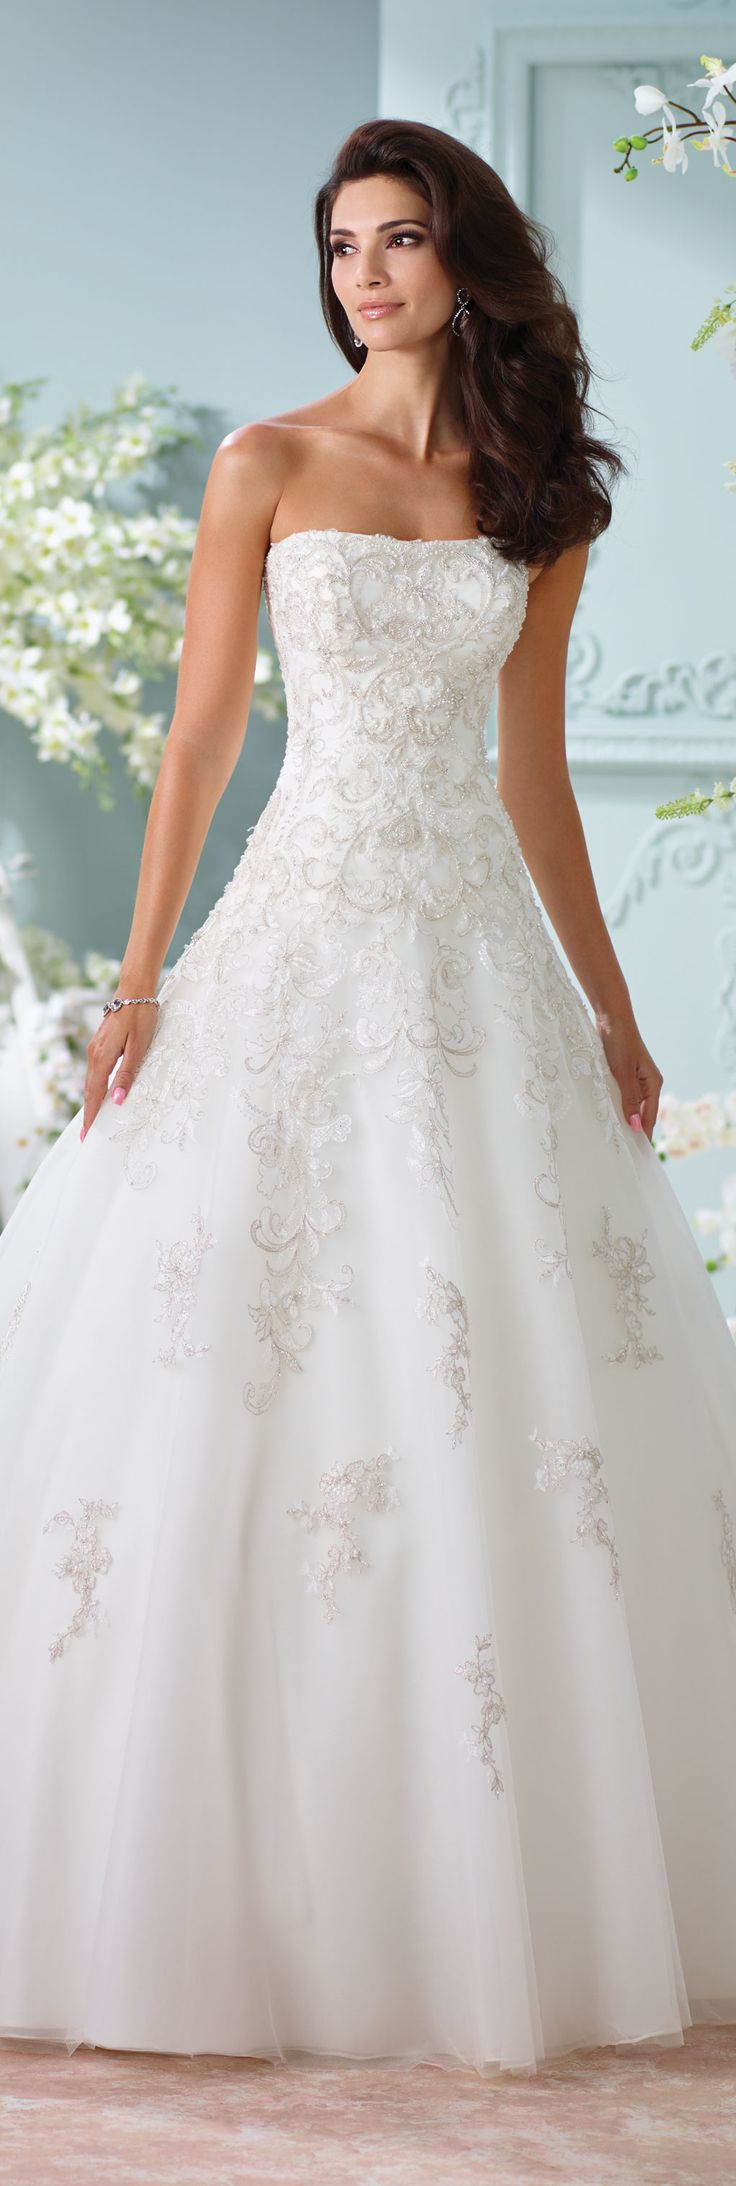 The David Tutera for Mon Cheri Spring 2016 Wedding Gown Collection - Style No. 116216 Sunniva  #straplesslaceweddingdress